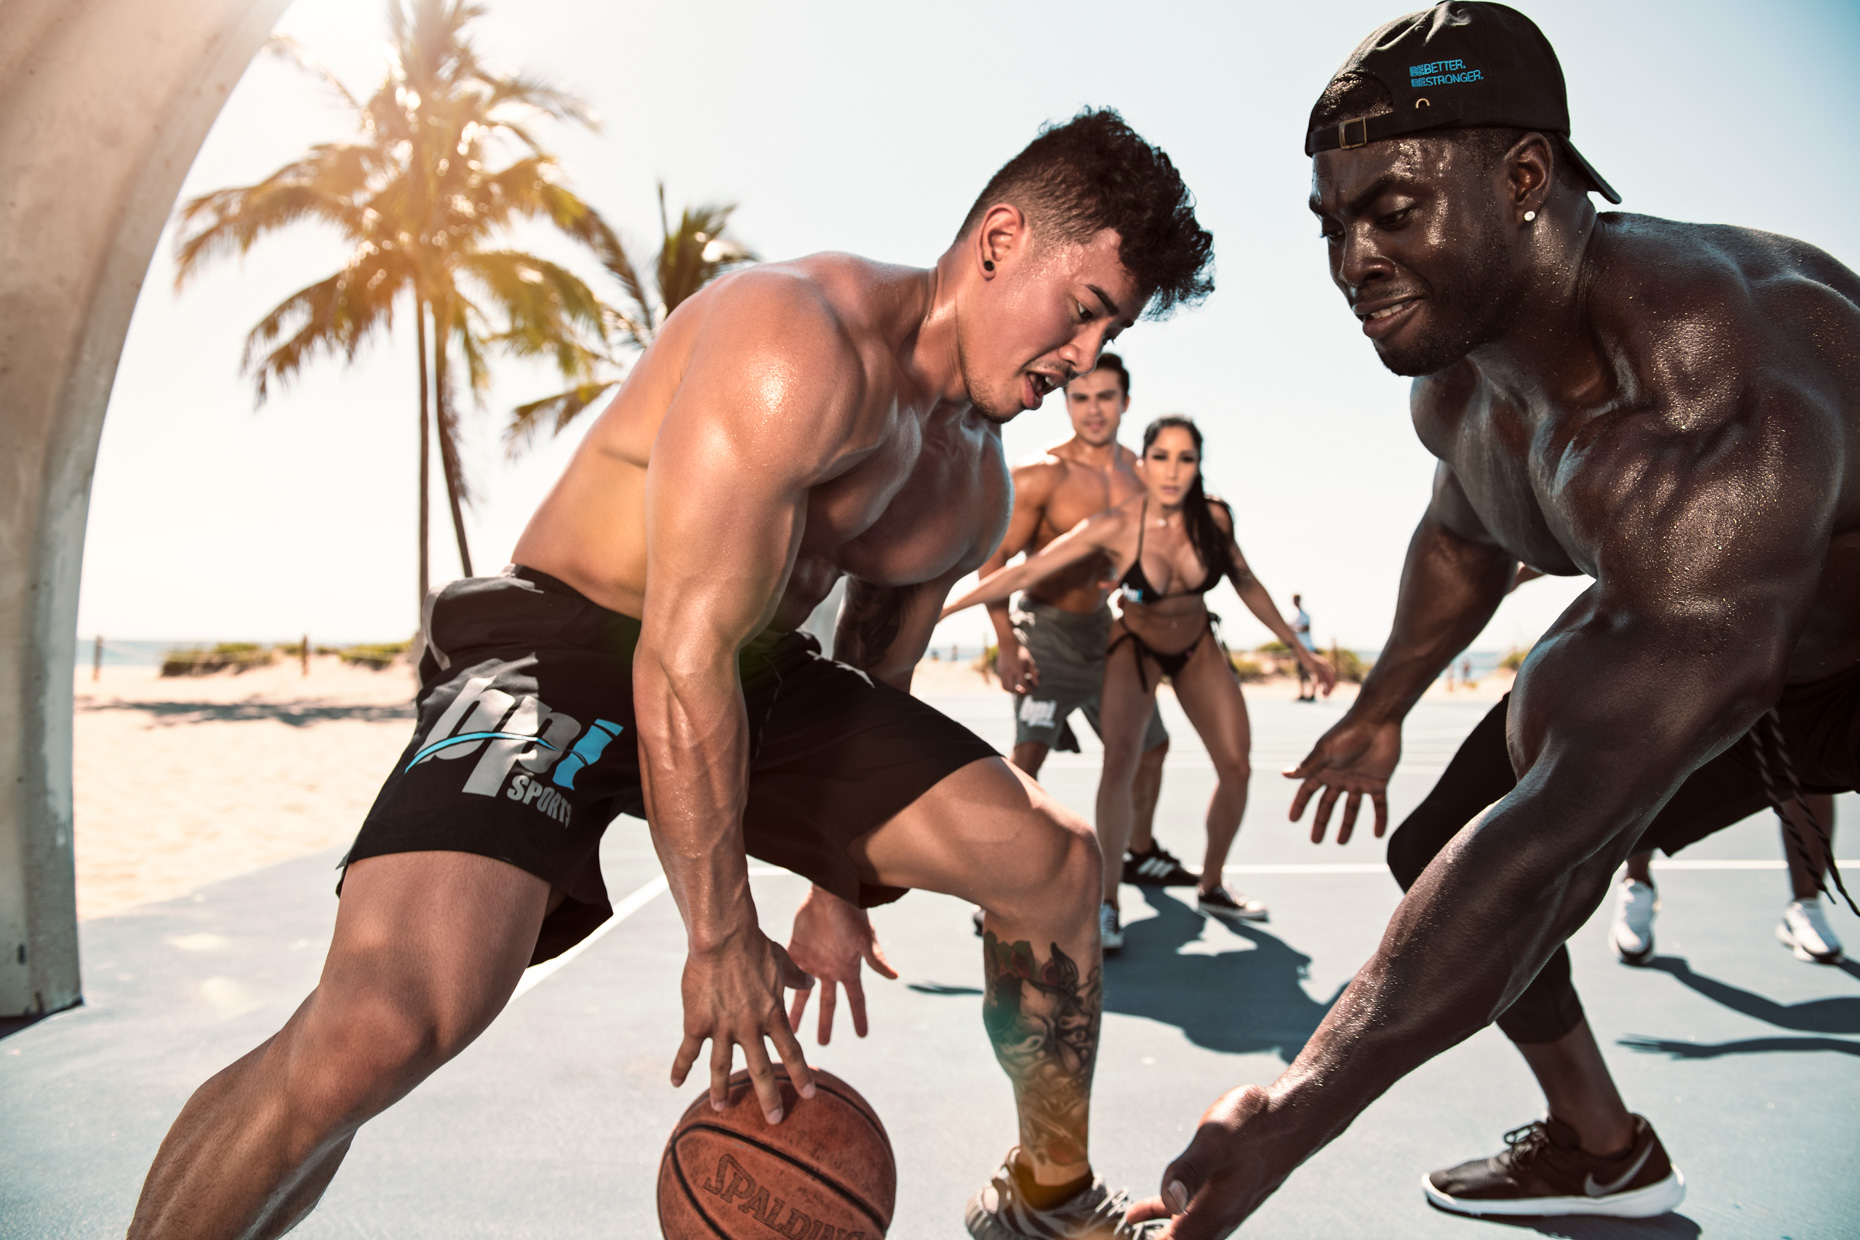 BPI Sports supplement brand ambassador athlete basketball photoshoot, Steven Cao and Nevin Wood